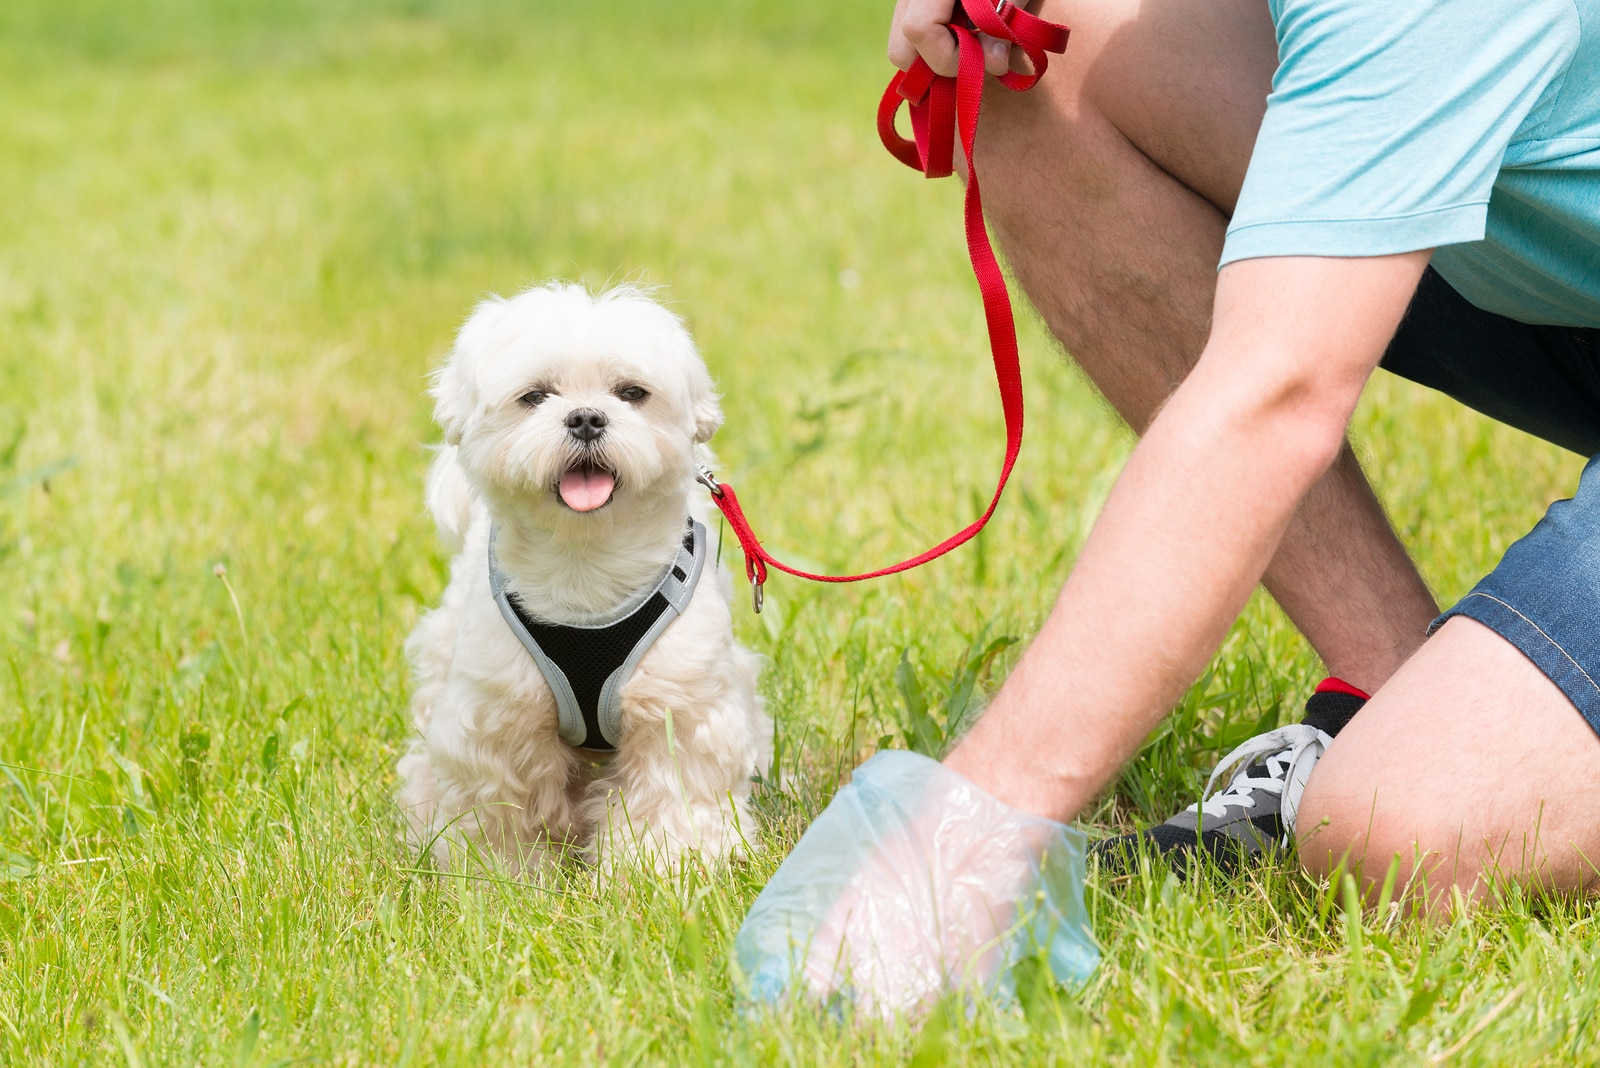 Diverting When To Be Alarmed By Your Poop Is My Poop Pet Why Do Dogs Roll Rabbit Poop Why Do Dogs Roll Raccoon Poop bark post Why Do Dogs Roll In Poop